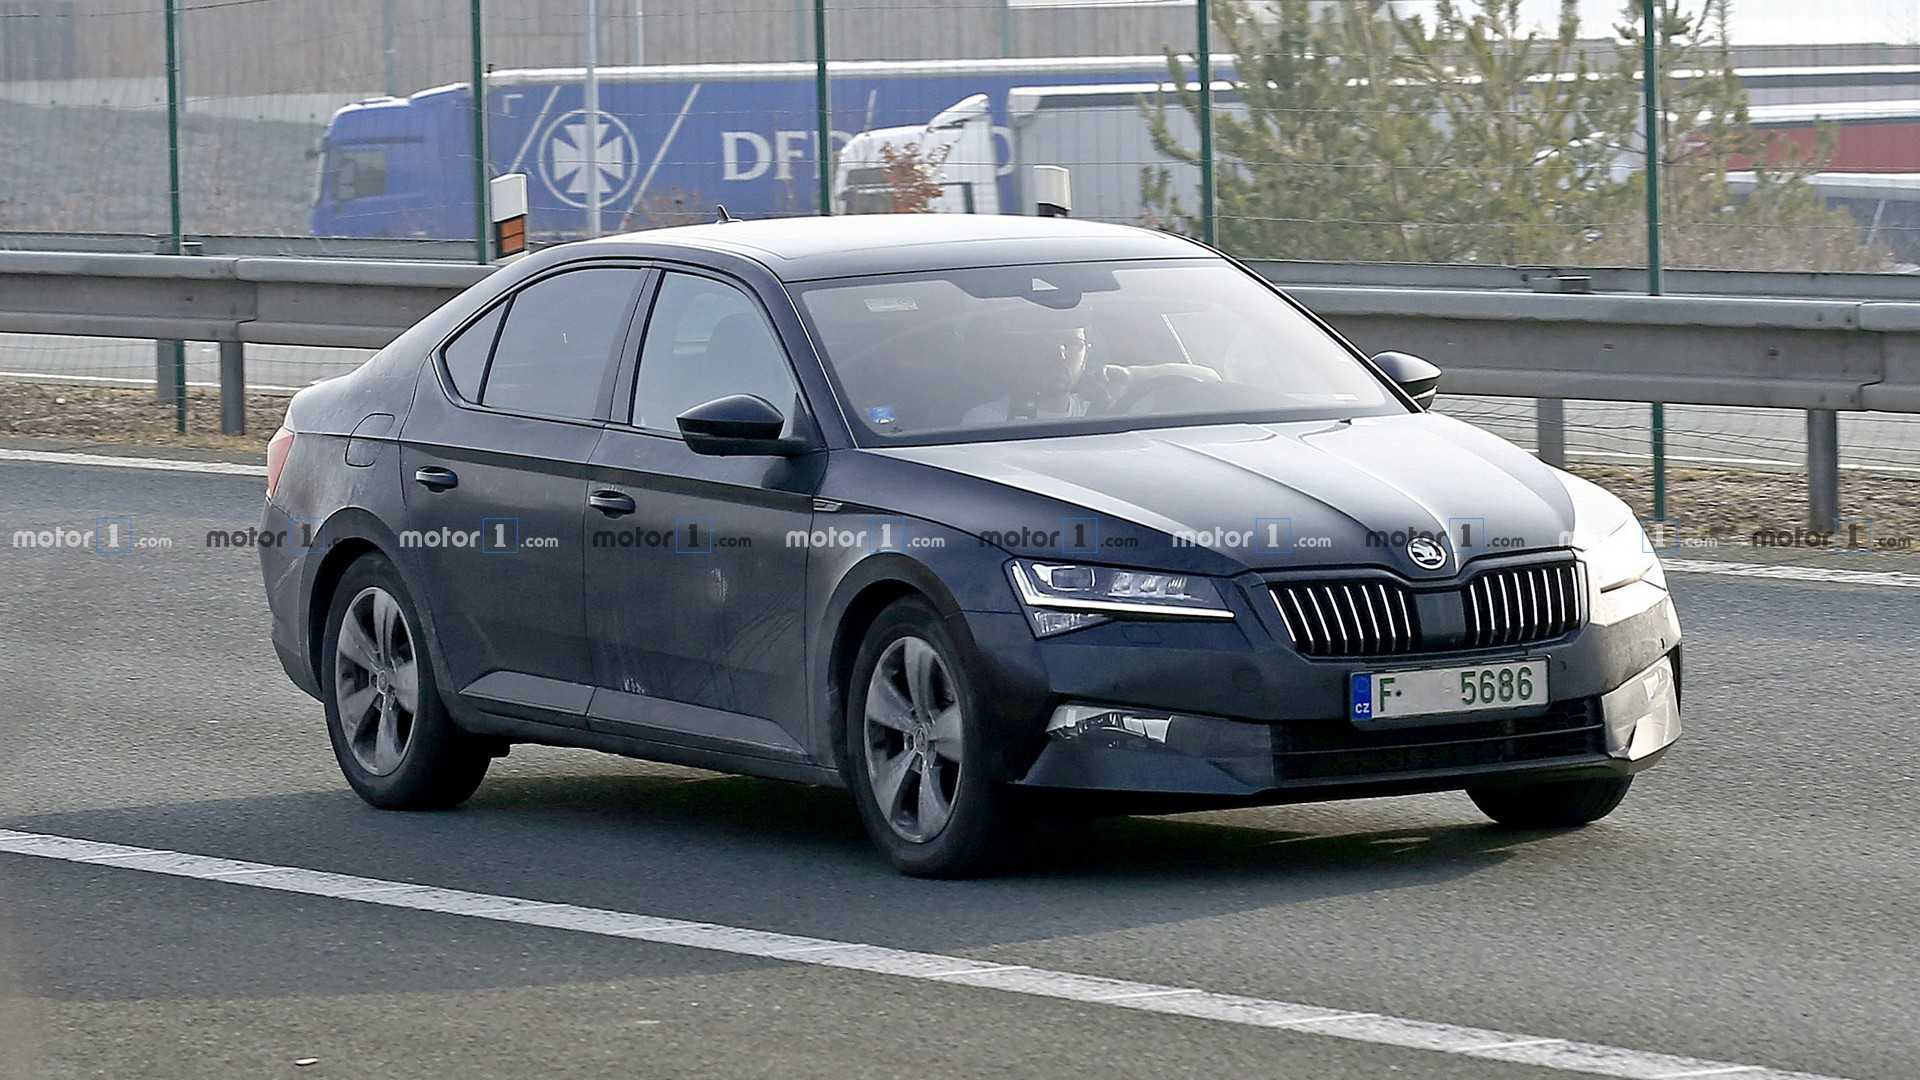 26 A Spy Shots Skoda Superb Review And Release Date